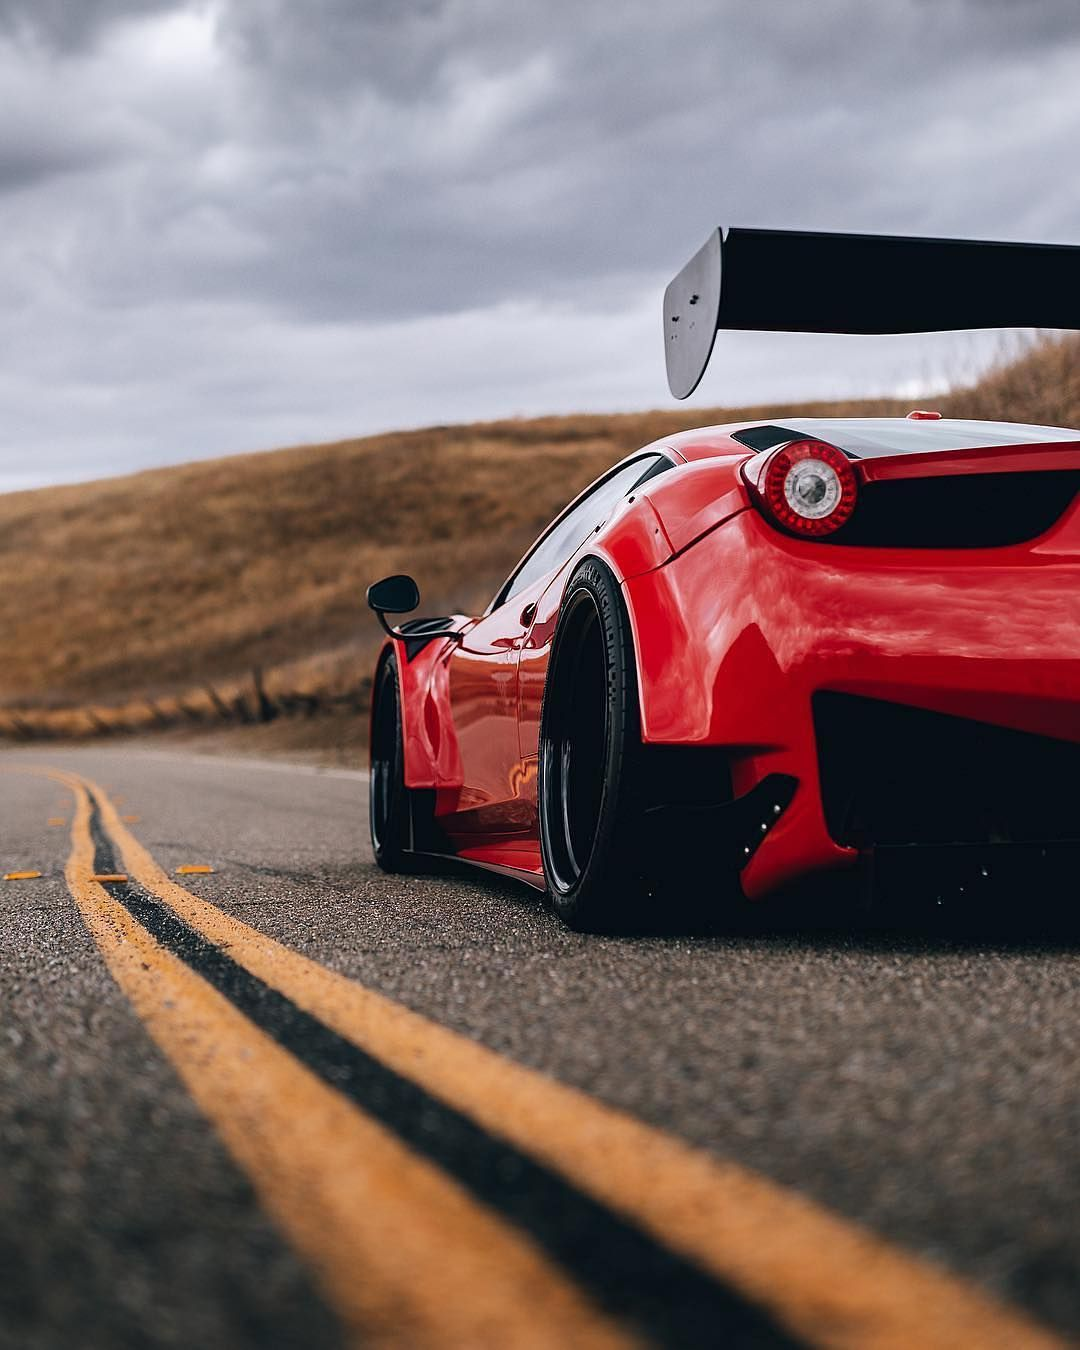 Real Or Video Game Photo By Guywithacamera415 Carlifestyle